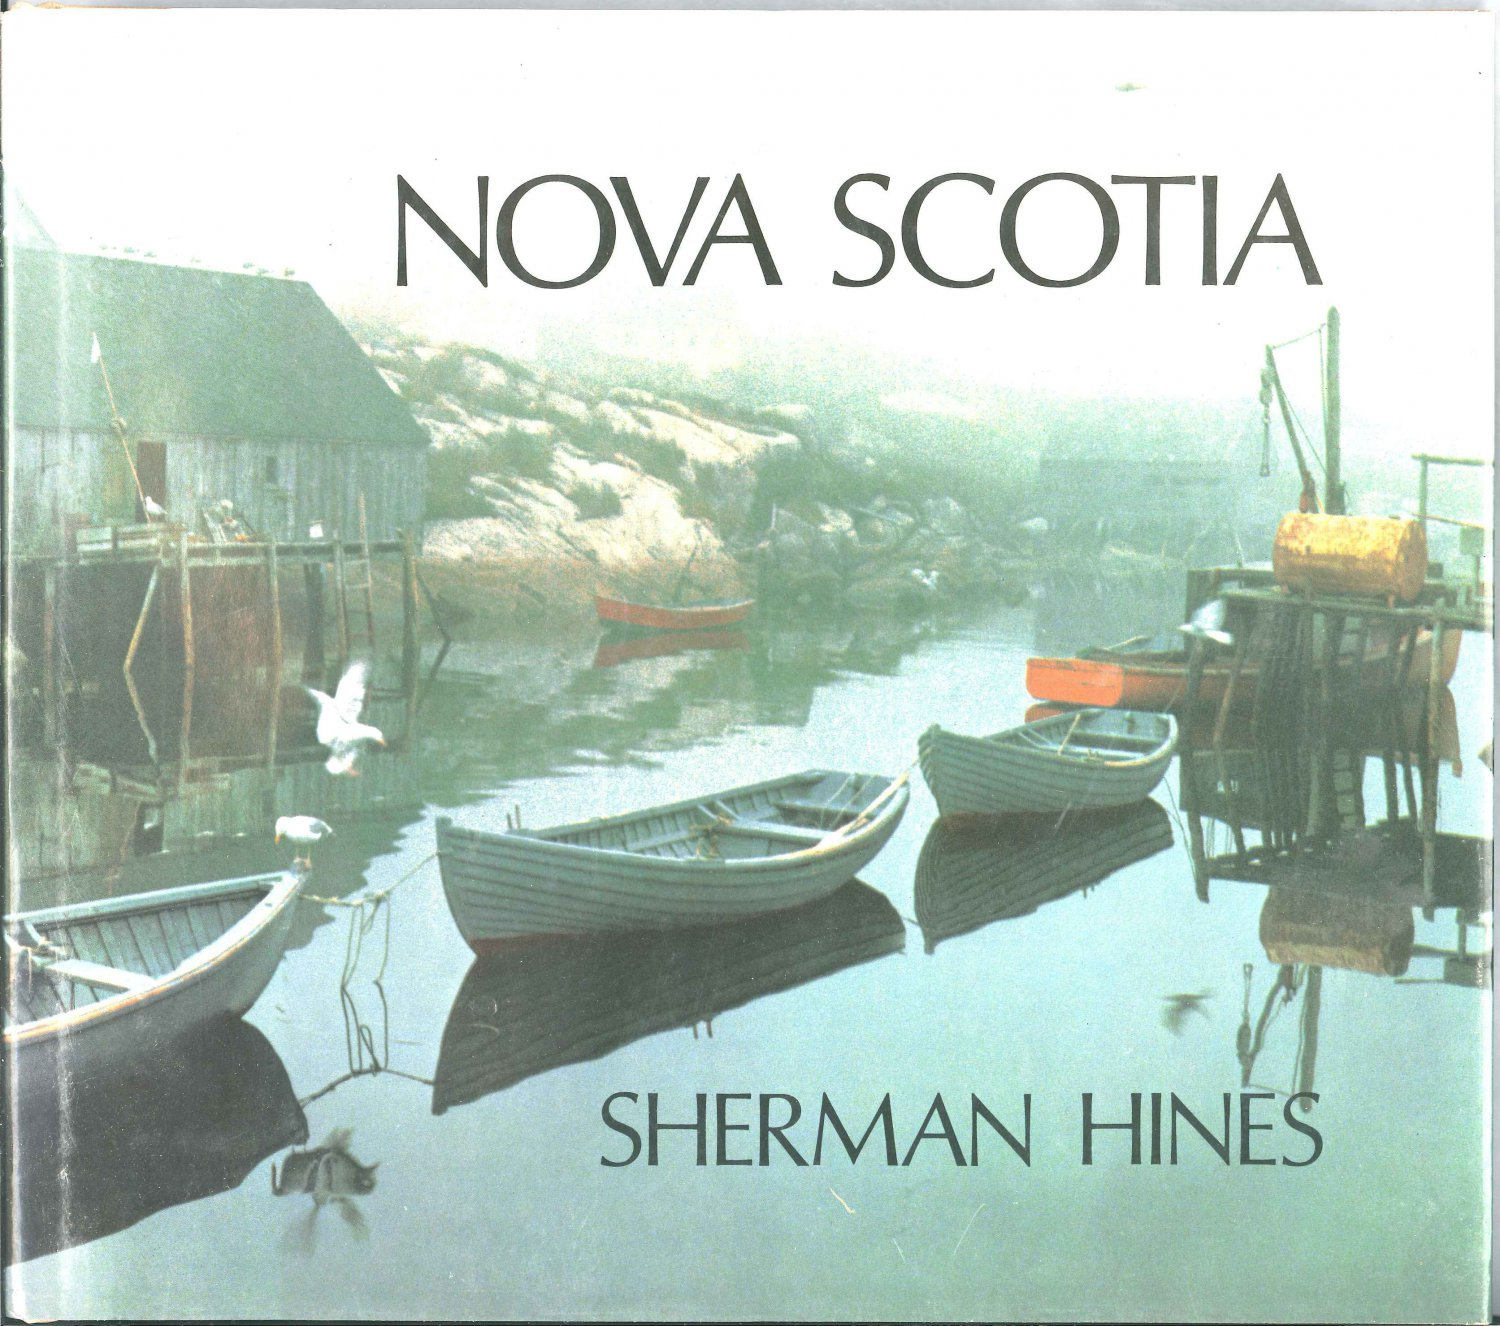 Nova Scotia Photographs by Sherman Hines Hardcover Fourth Printing 1984 SMC